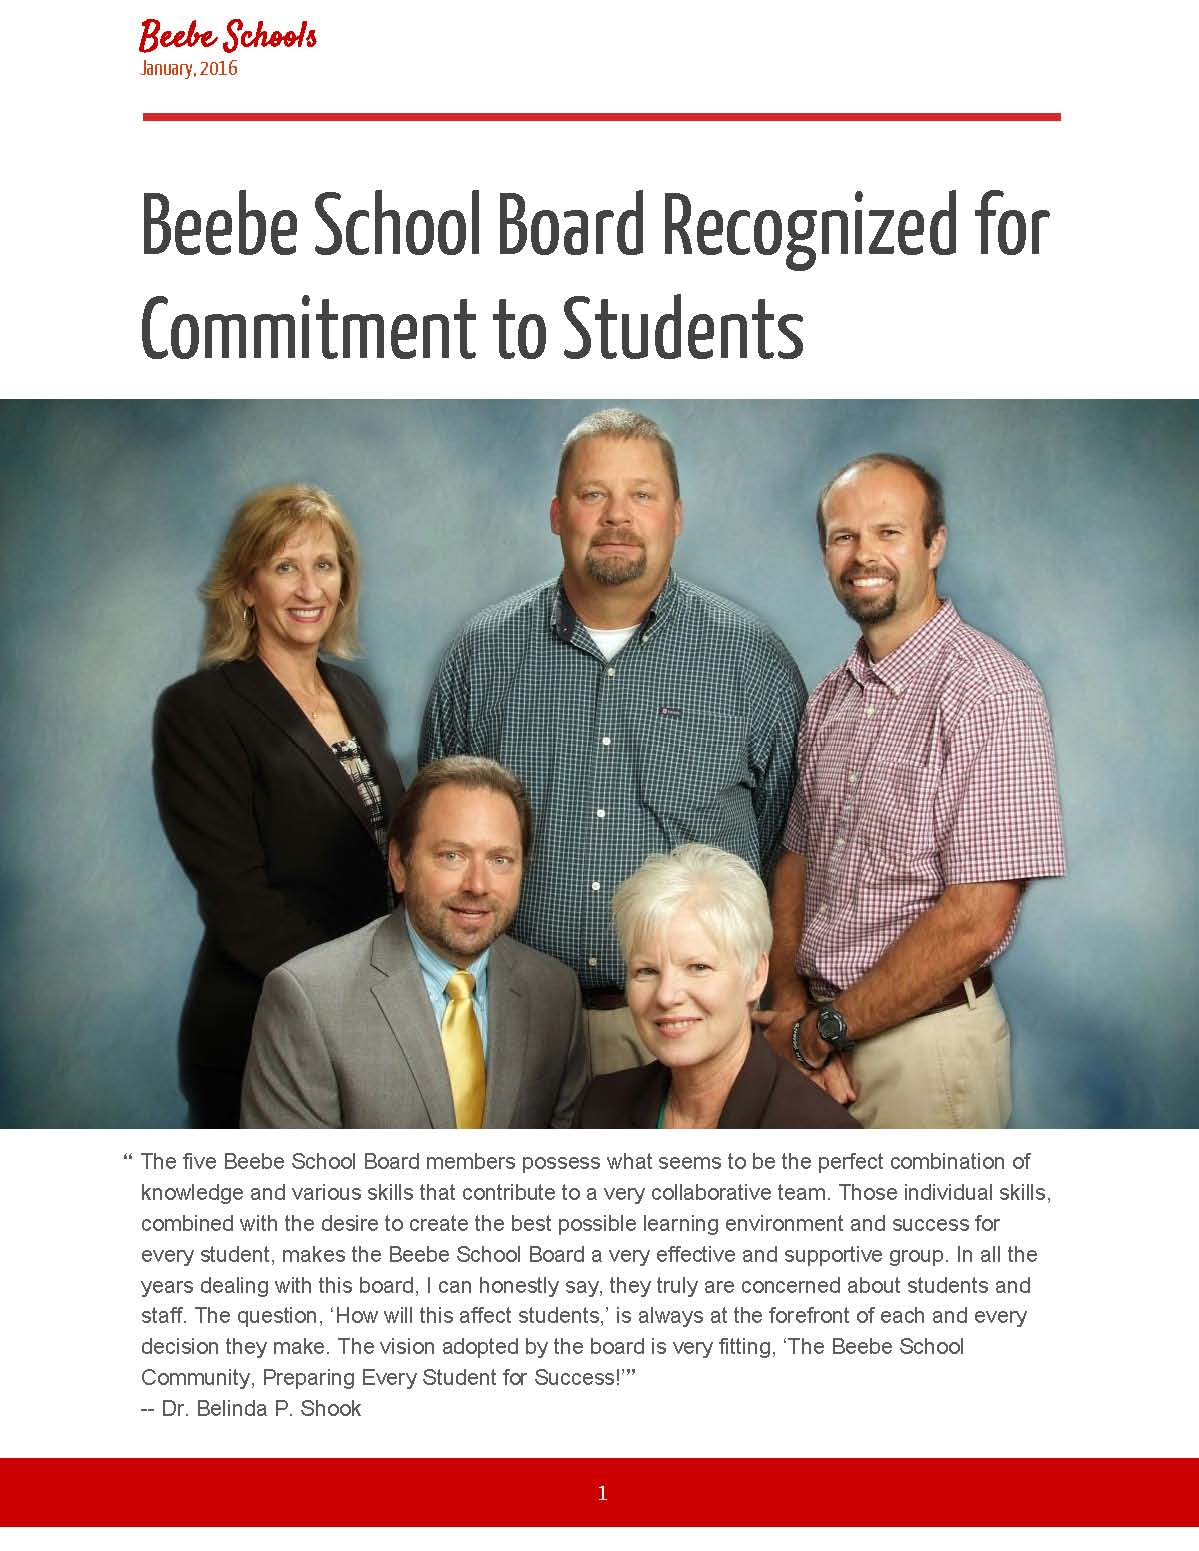 Beebe School Board Recognized for Commitment to Students